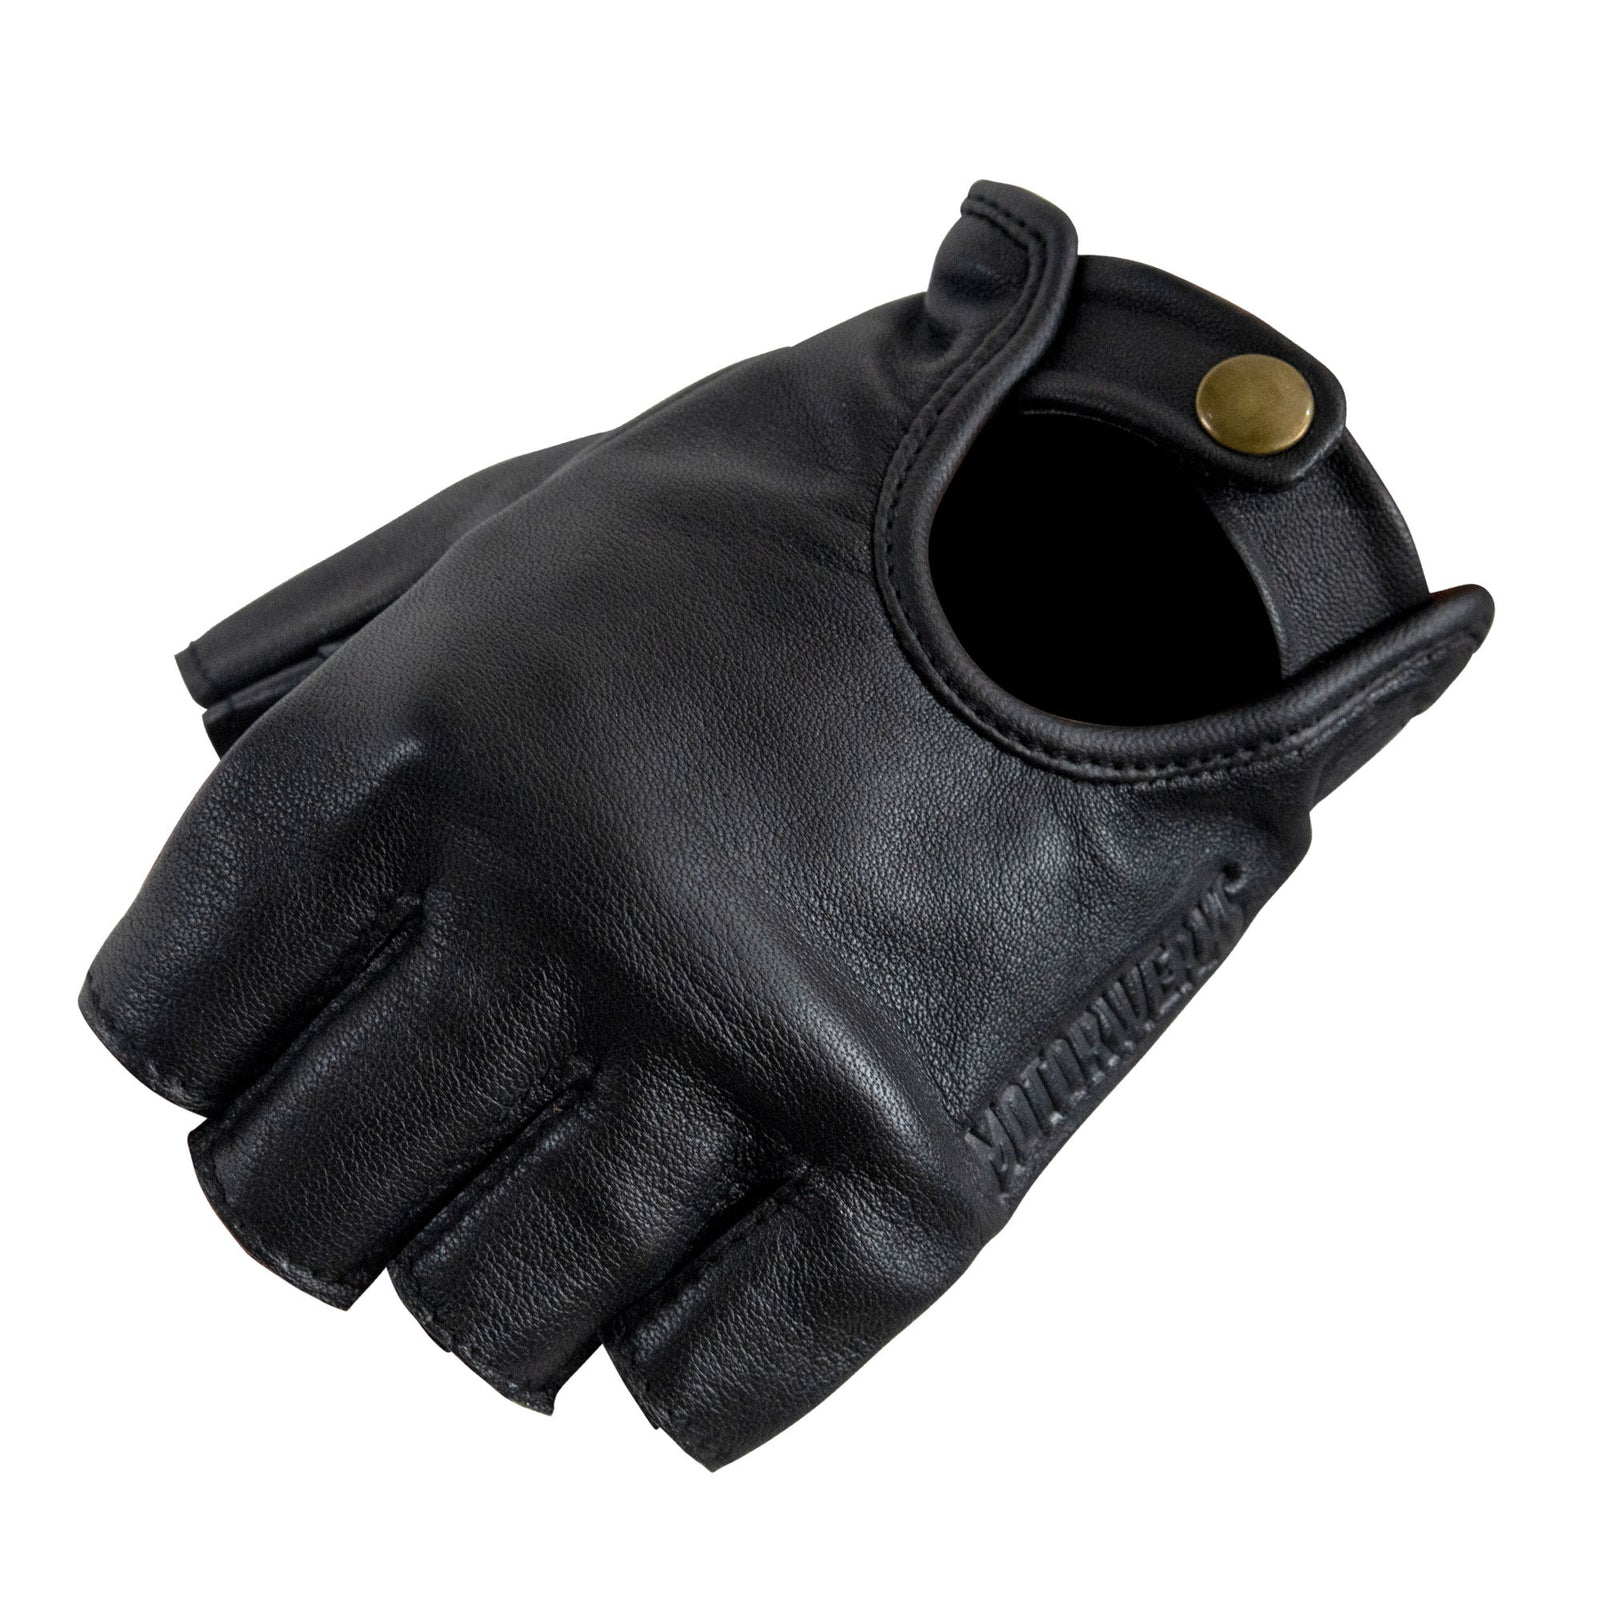 MW MadMax Fingerless Glove Black